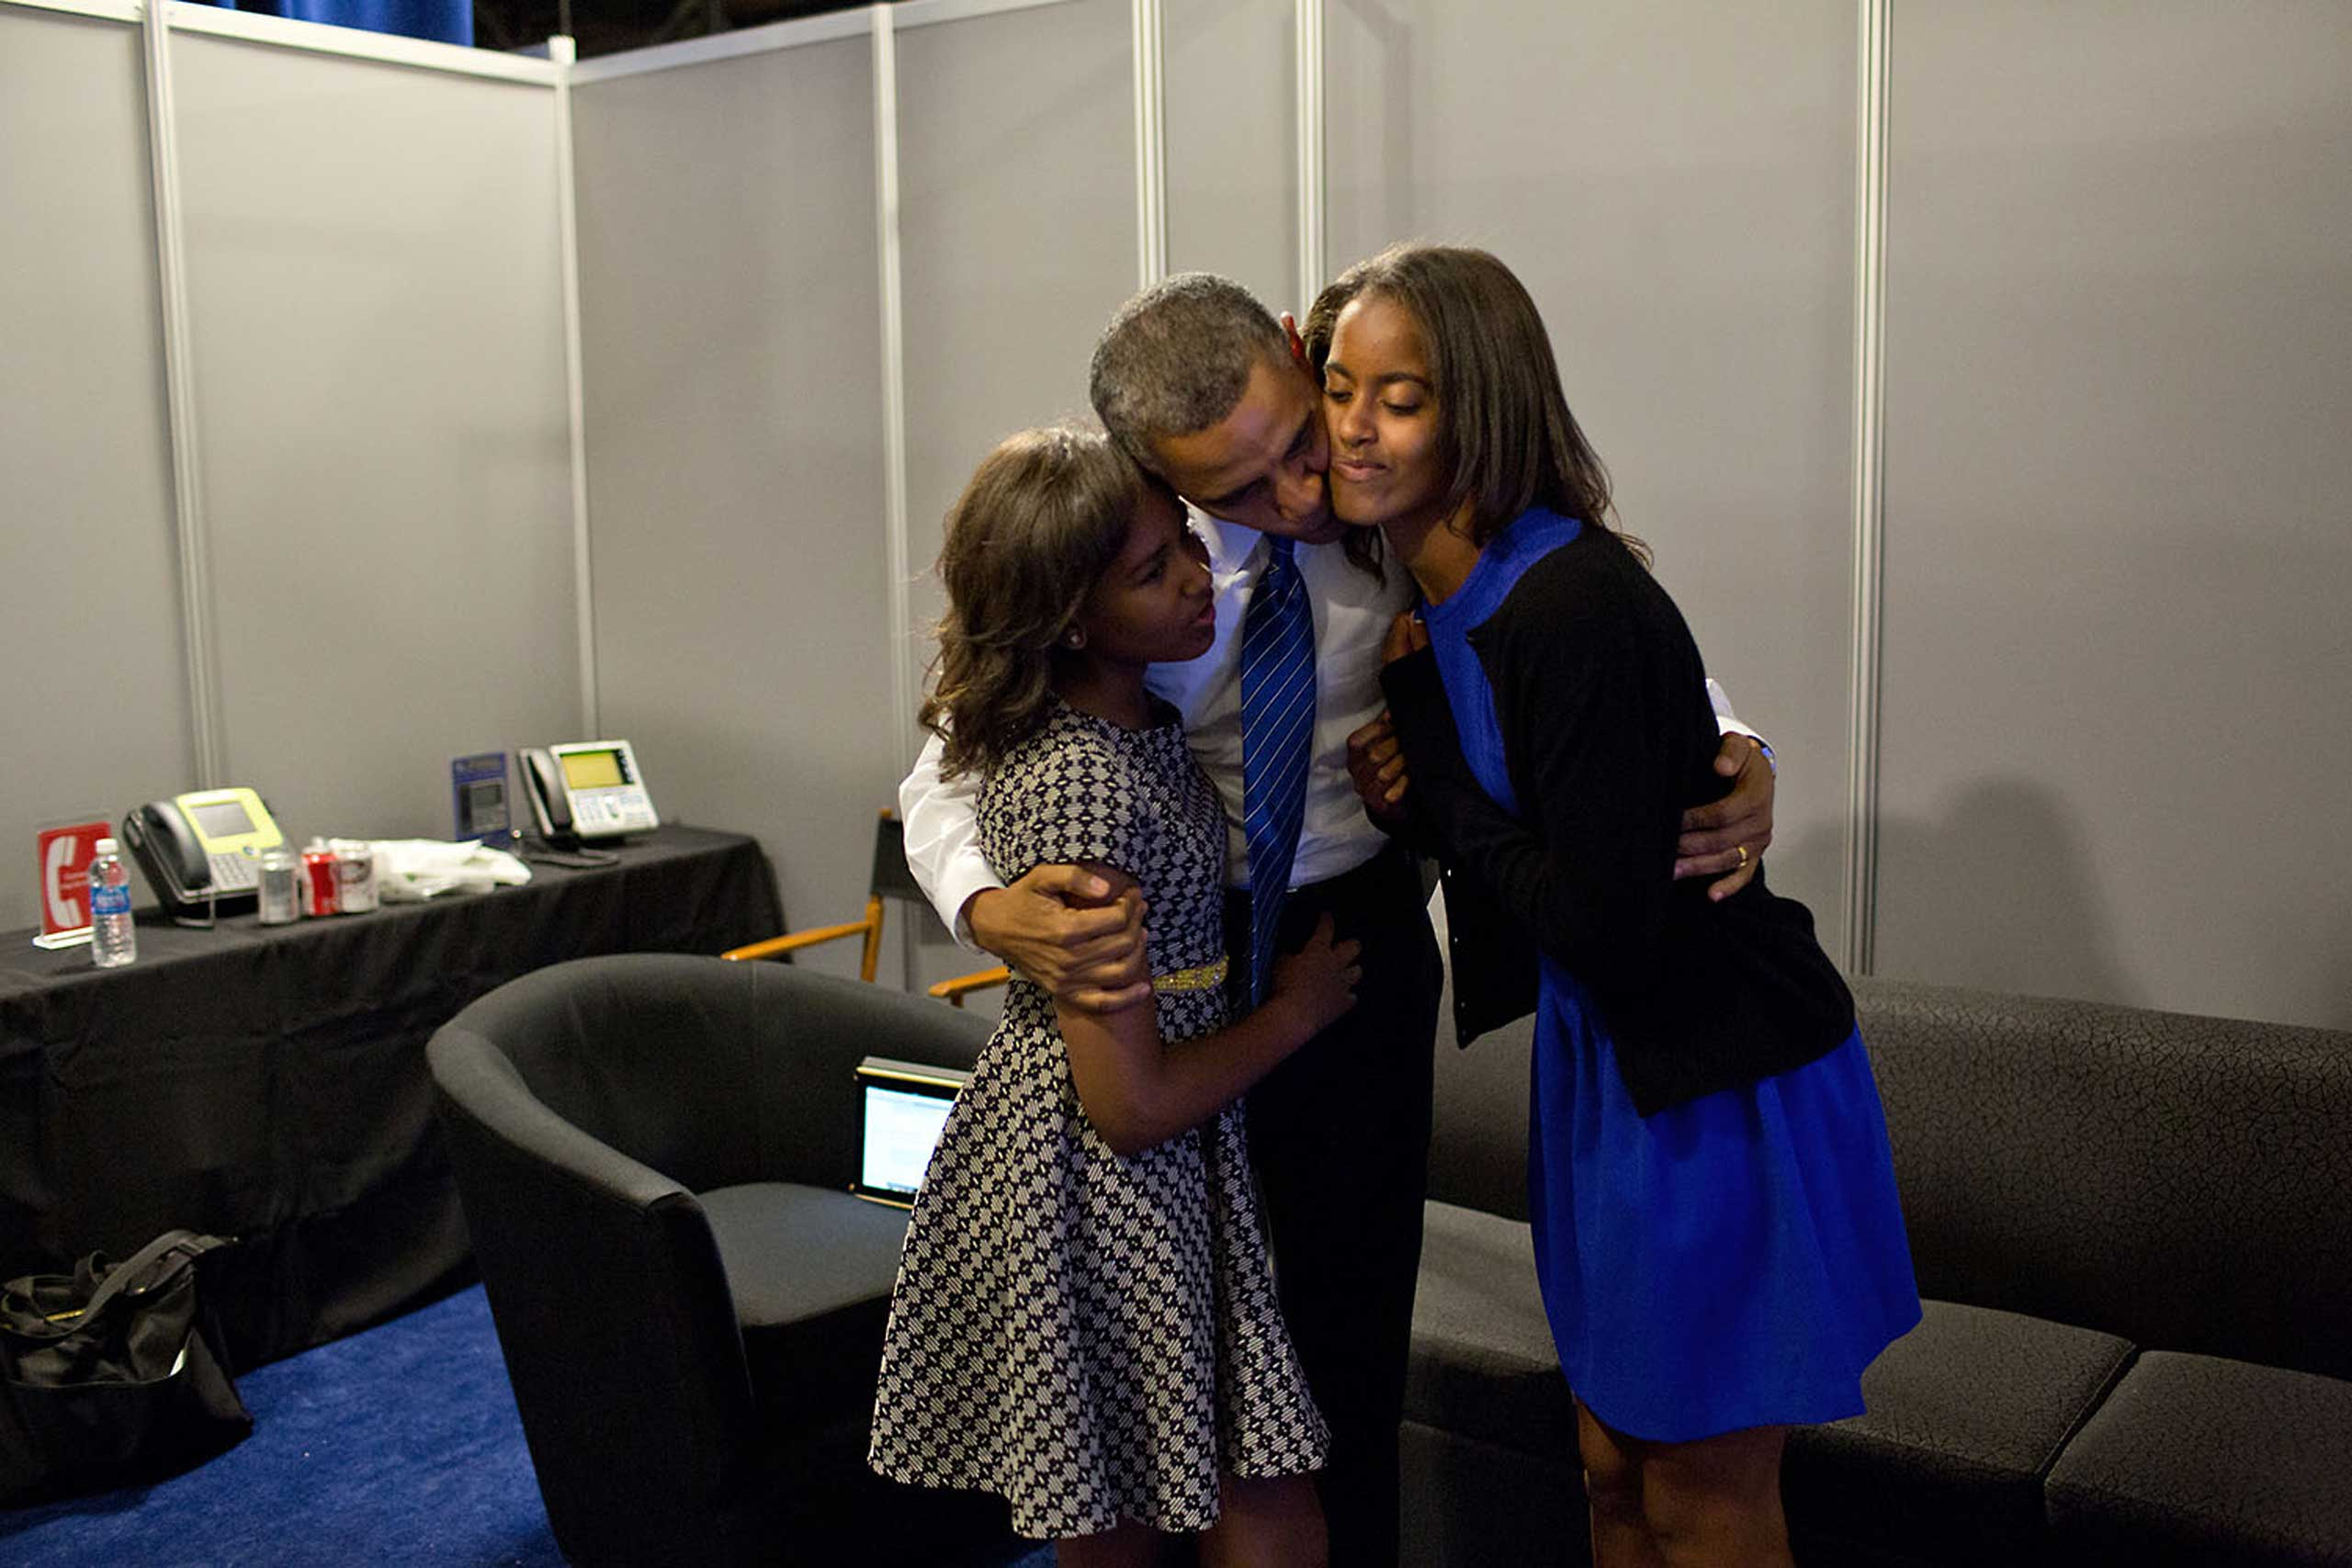 President Obama greets daughters Sasha and Malia at the Time Warner Cable Arena before delivering remarks at the Democratic National Convention in Charlotte, N.C., Sept. 6, 2012.